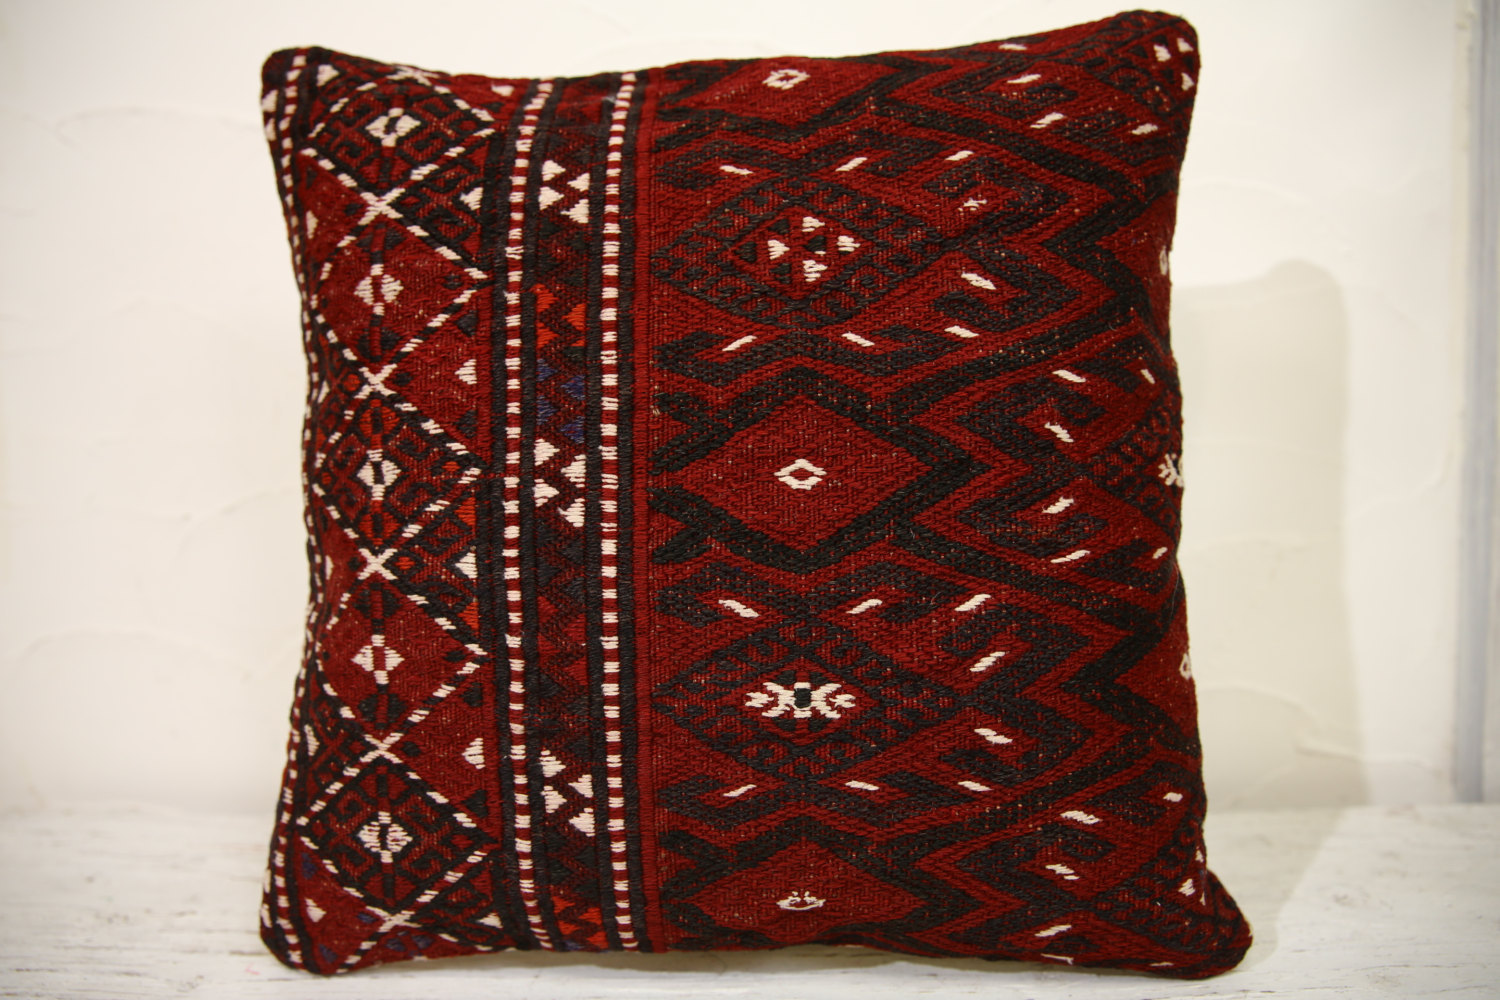 Kilim Pillows | 16x16 | turkish pillows | 974 | Accent Pillows,Decorative Pillow